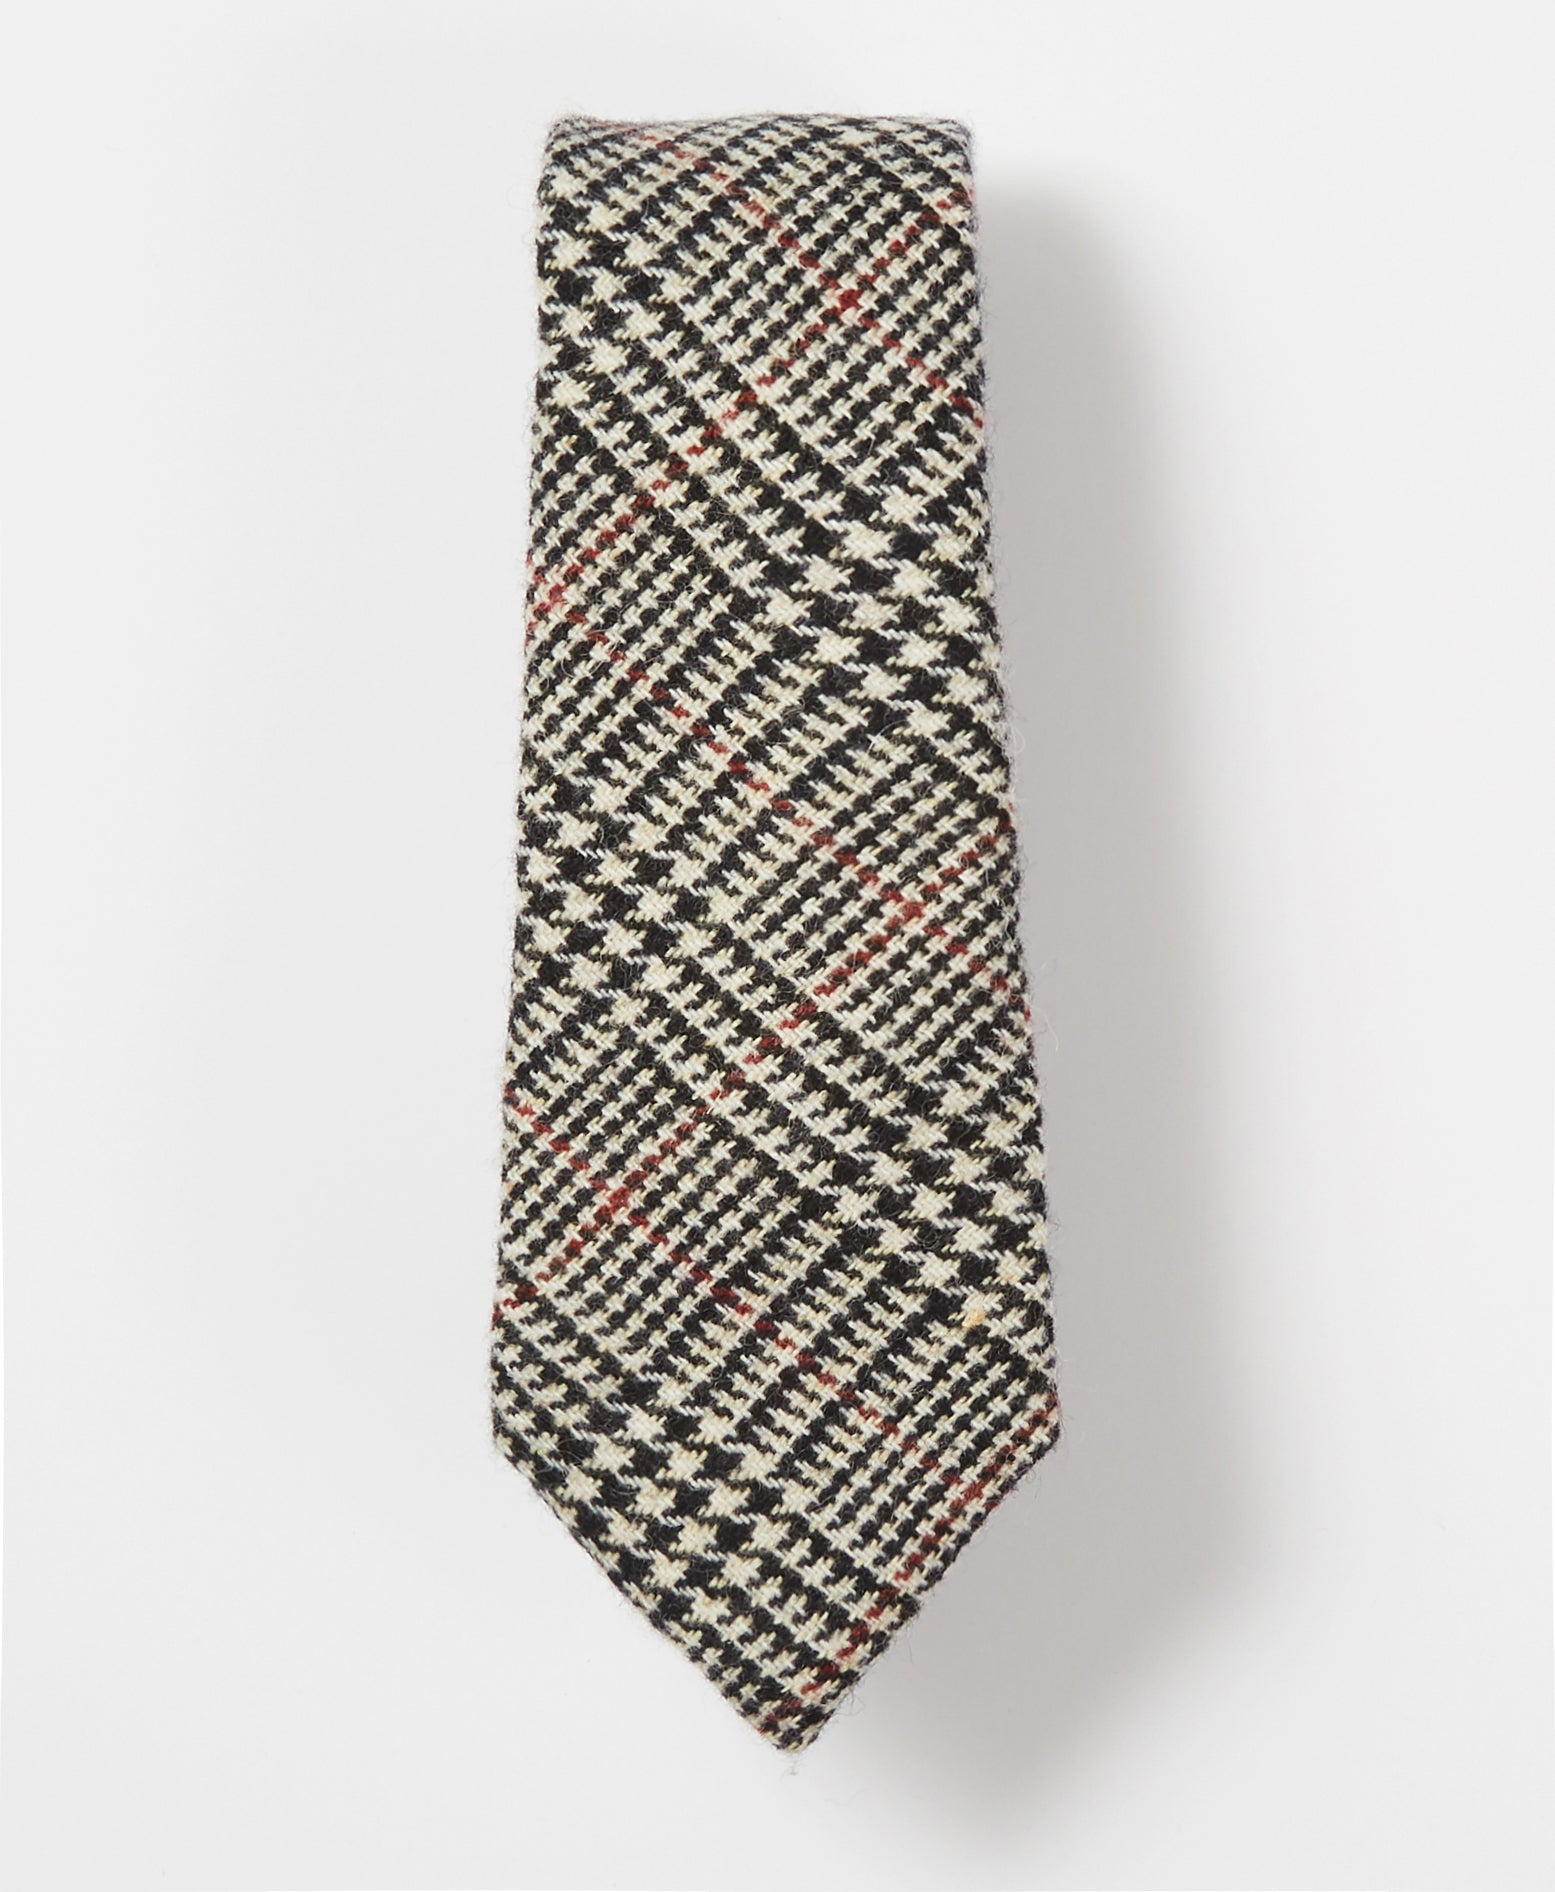 The Grayson Necktie